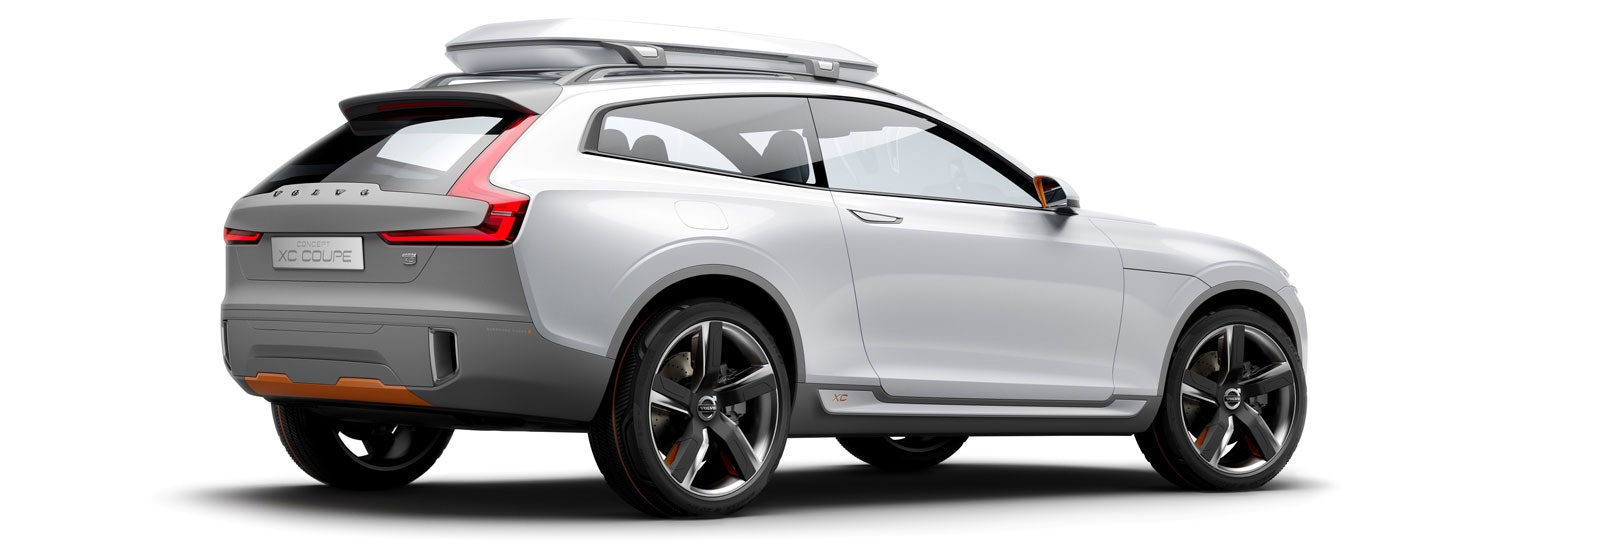 Volvo Xc50 Coupe Suv Price Specs And Release Date Carwow